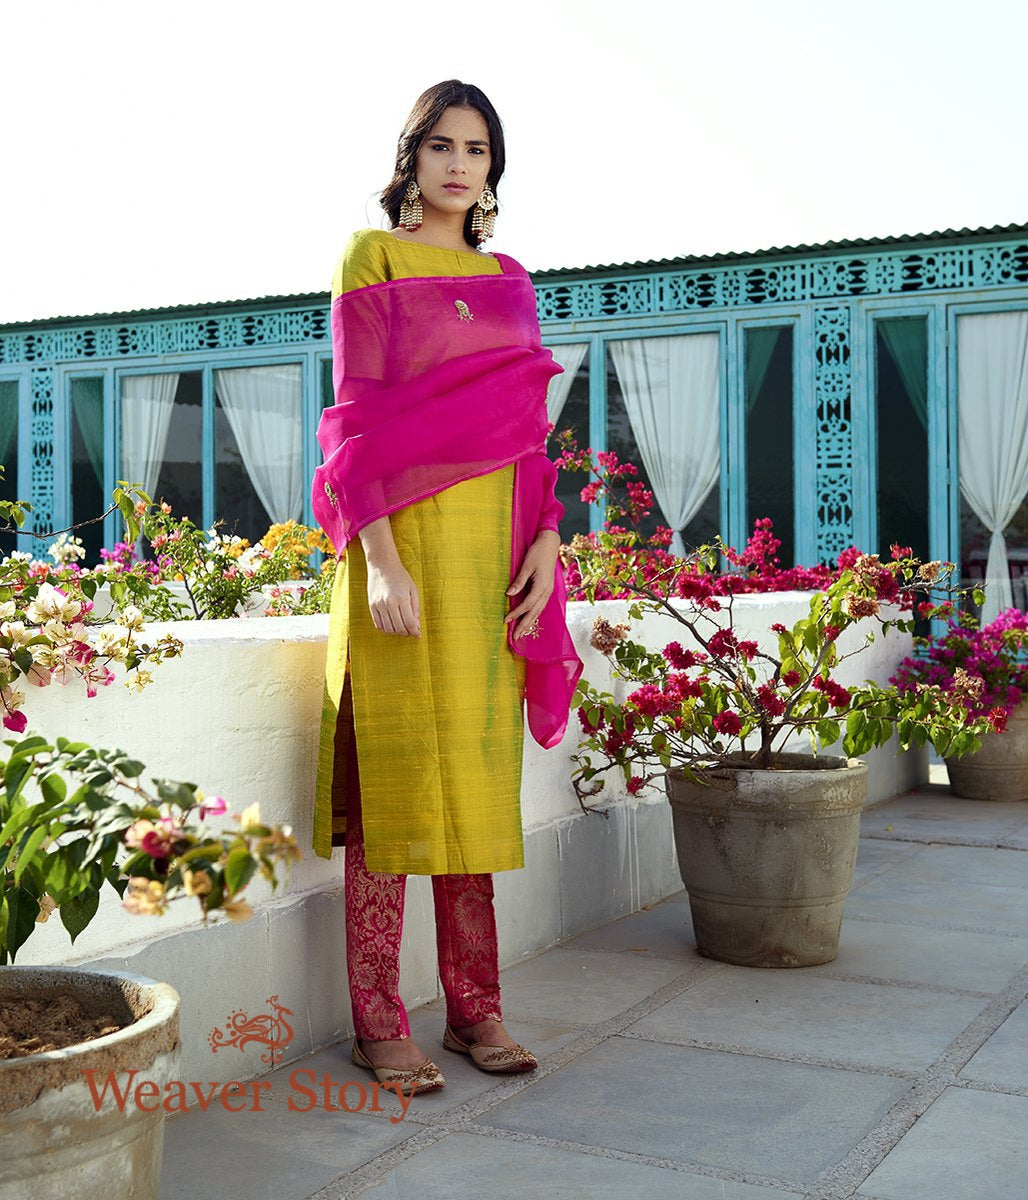 Green Raw Silk Kurta with Pink Pants and Pink Hand Embroidered Organza Dupatta